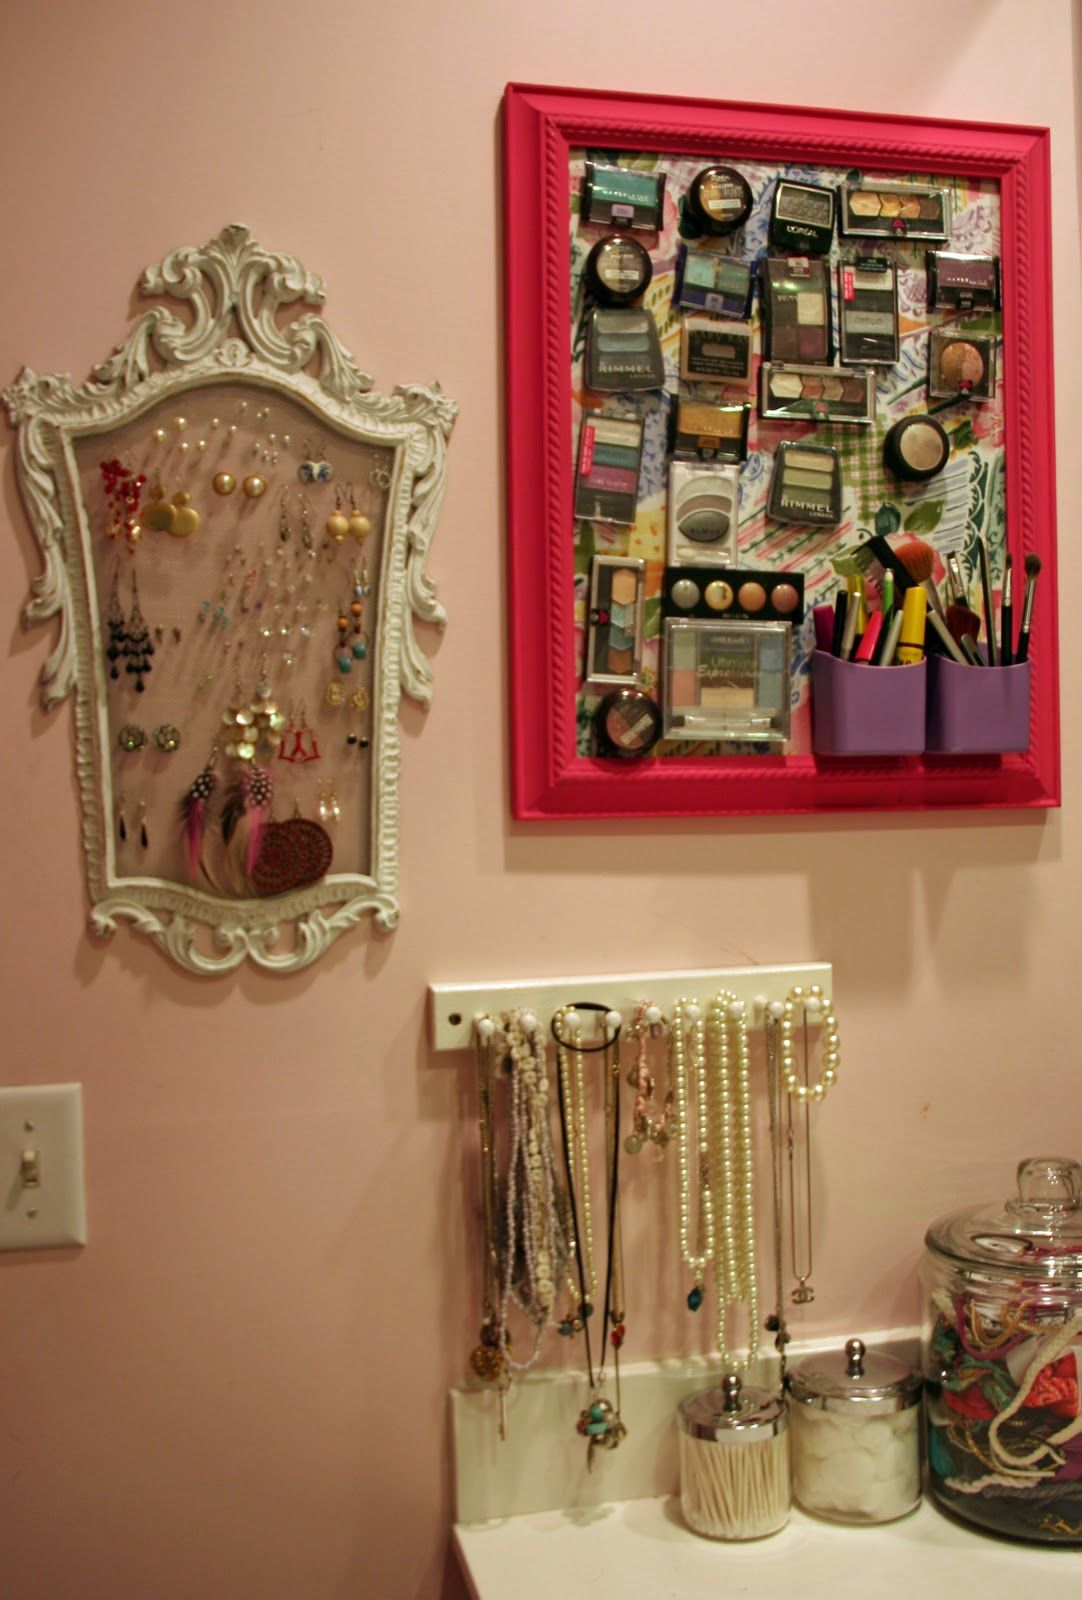 DIY Magnet Board for Make-up and Jewelry Organizers | Life Moves Pretty Fast